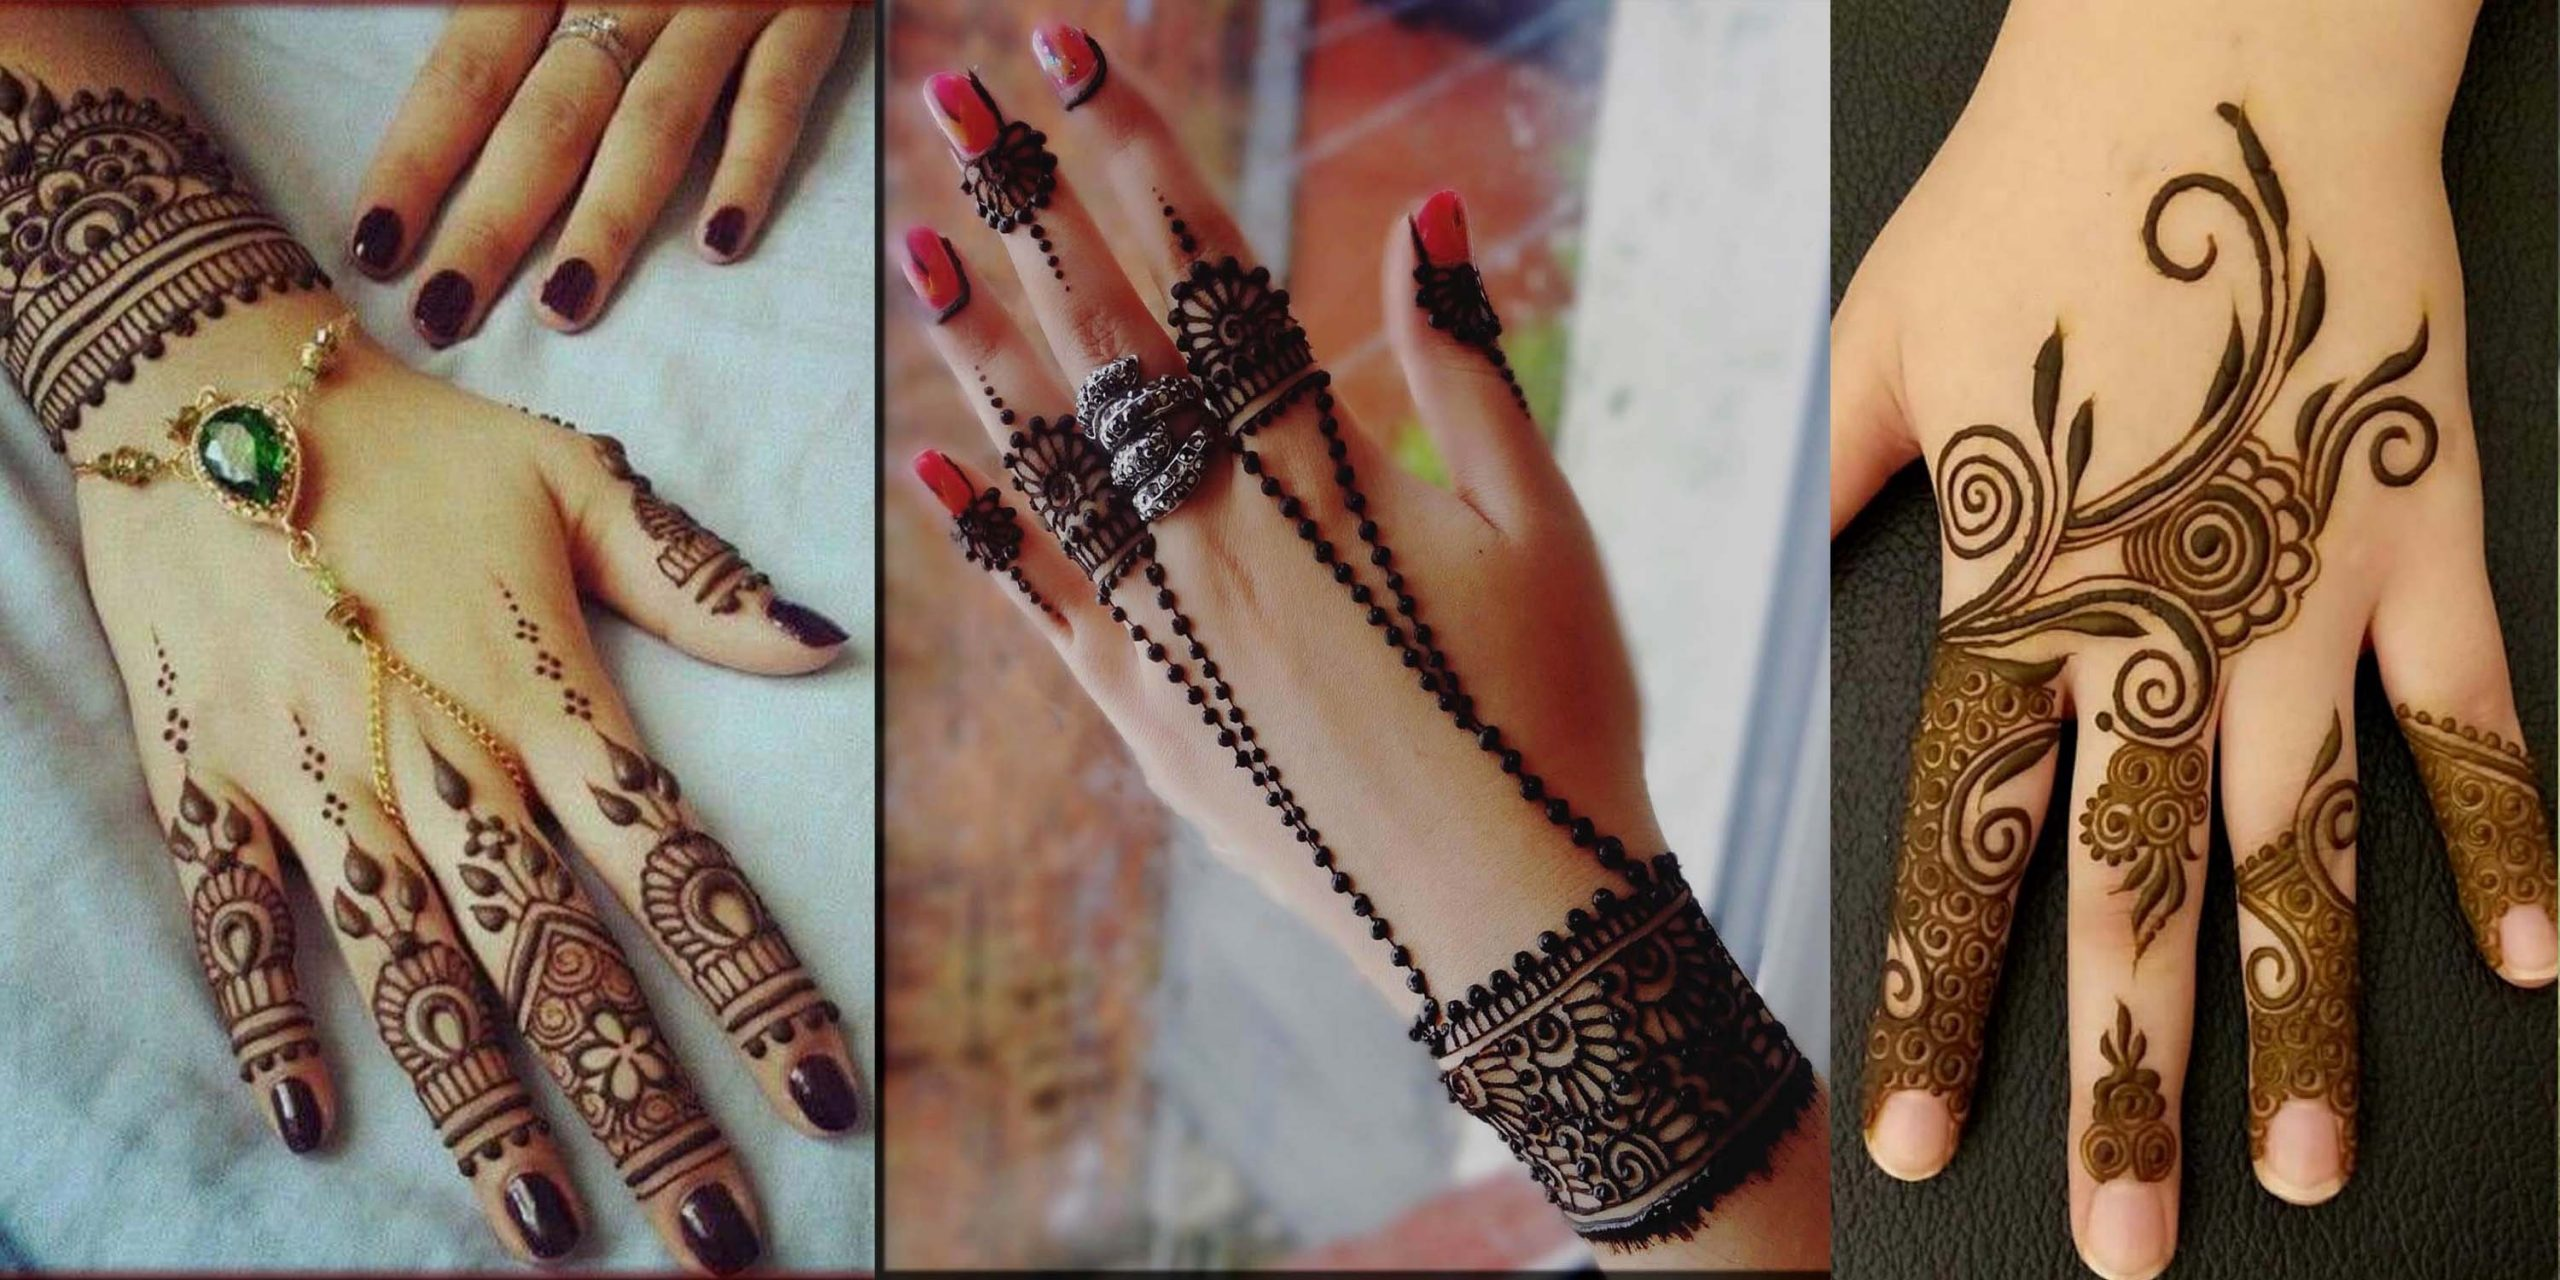 Trending Mehndi Designs 50 Latest Henna Tattoo Ideas For 2018: 26 Stunning Finger Mehndi Designs Trending In 2020